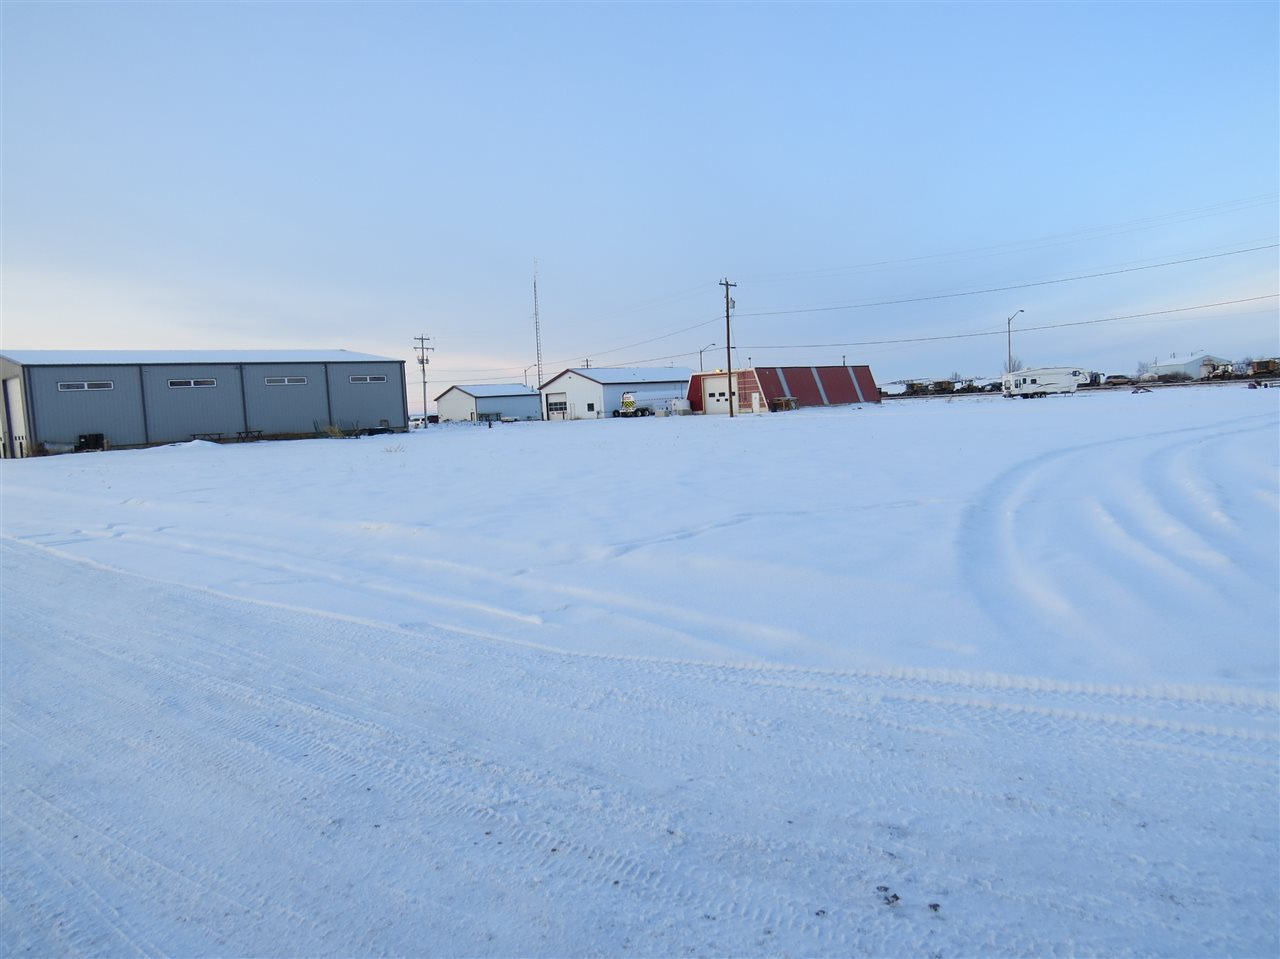 3 Large Commercial Lots, .8 acres Lougheed! Build a shop or just terrific secure Storage for pipe, equipment parking or whatever you like in this nice safe business area of Lougheed, close to Hardisty Oil Storage Terminal and oilfields in East Central Alberta. Level and ready to build on also great location just off Hwy 13 and easy access with front and back lane into property. Priced right, ready to sell all 3 lots $45,000.